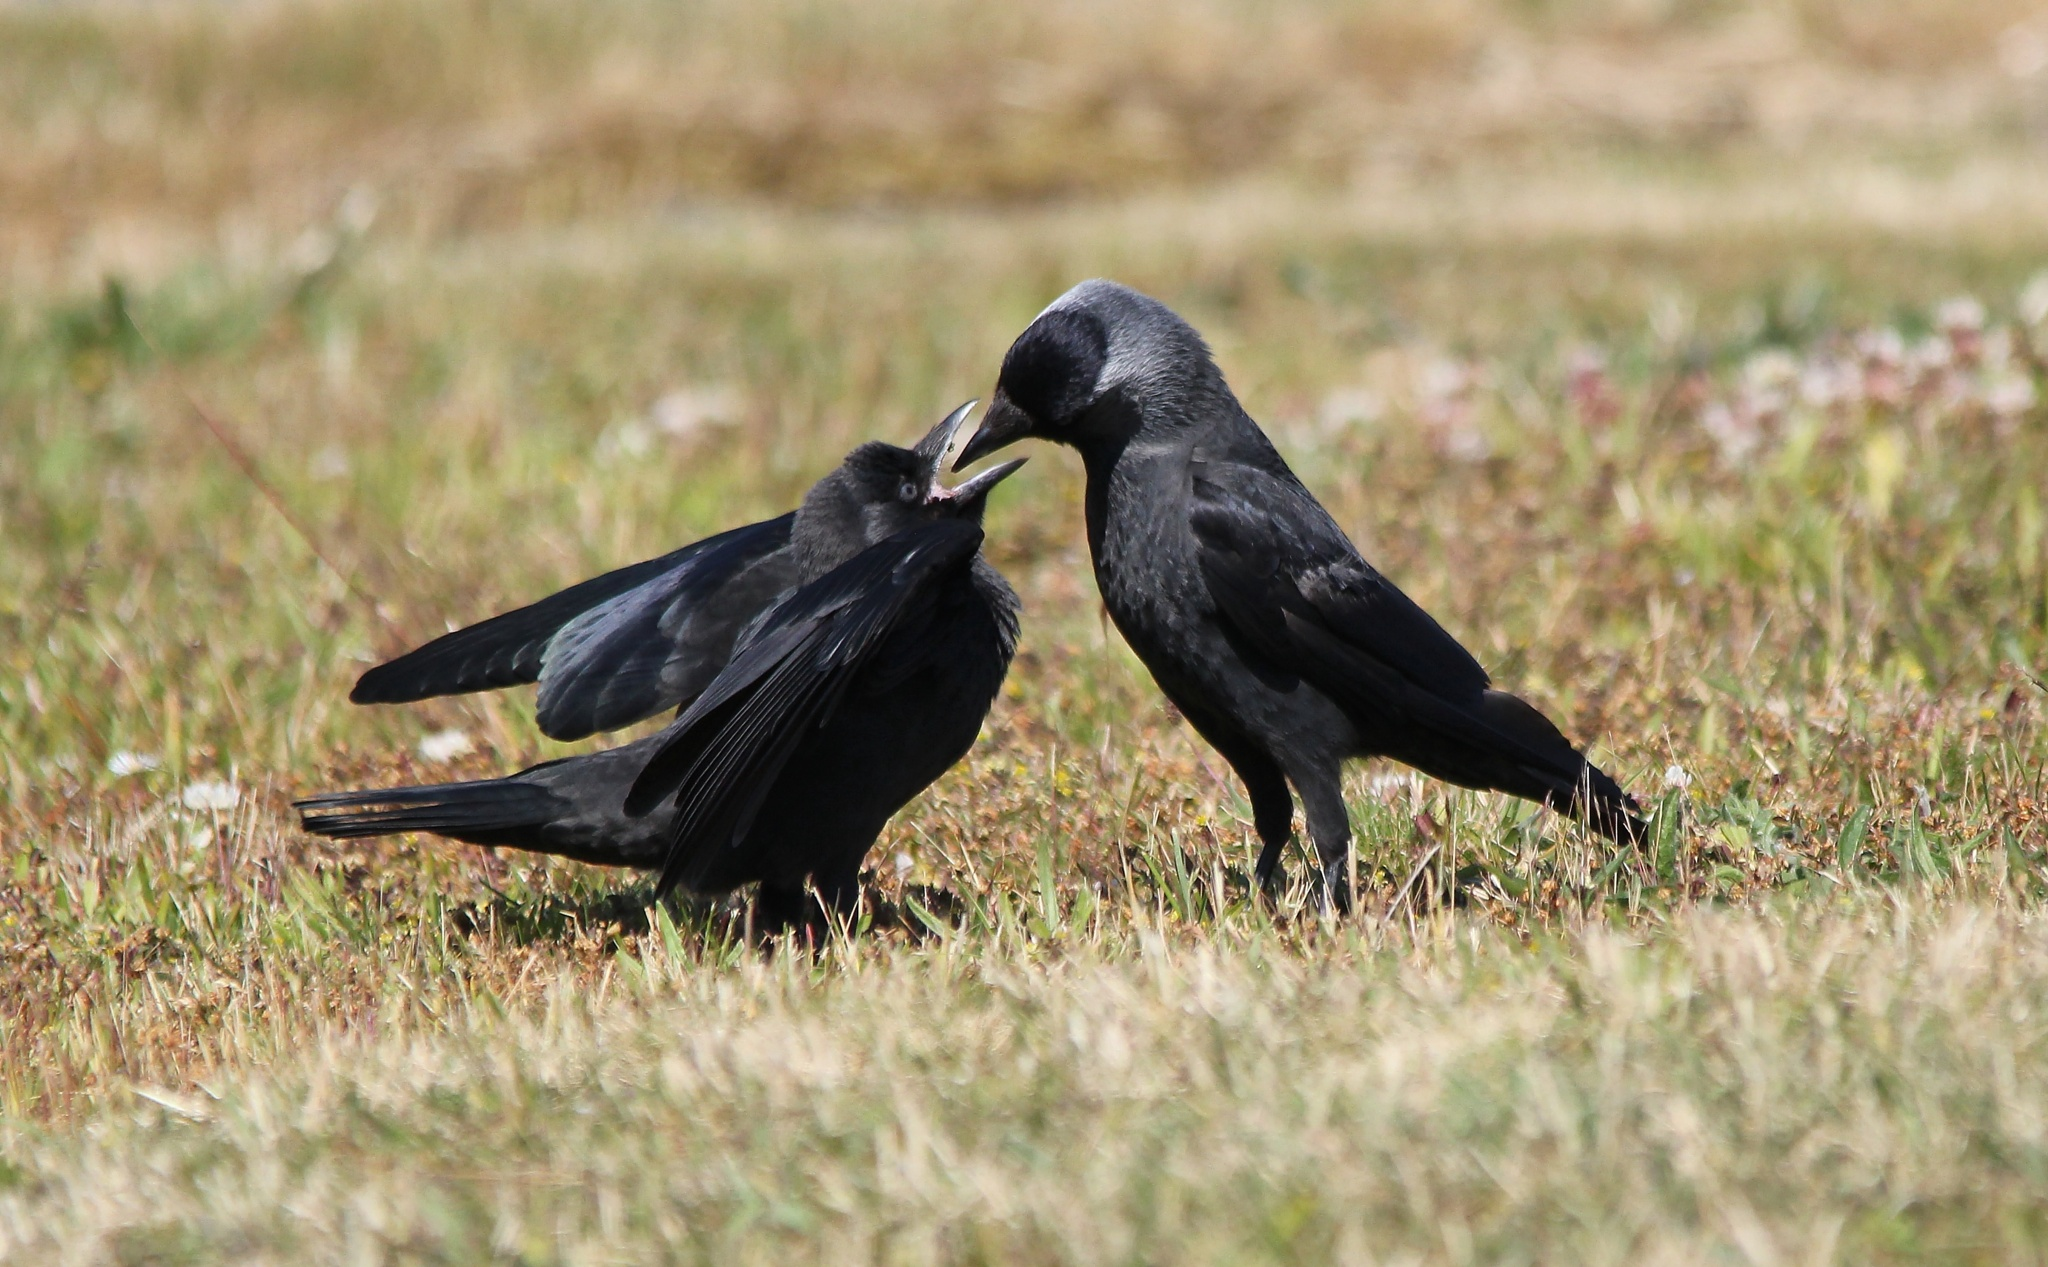 Jackdaw feeding young by annecotton